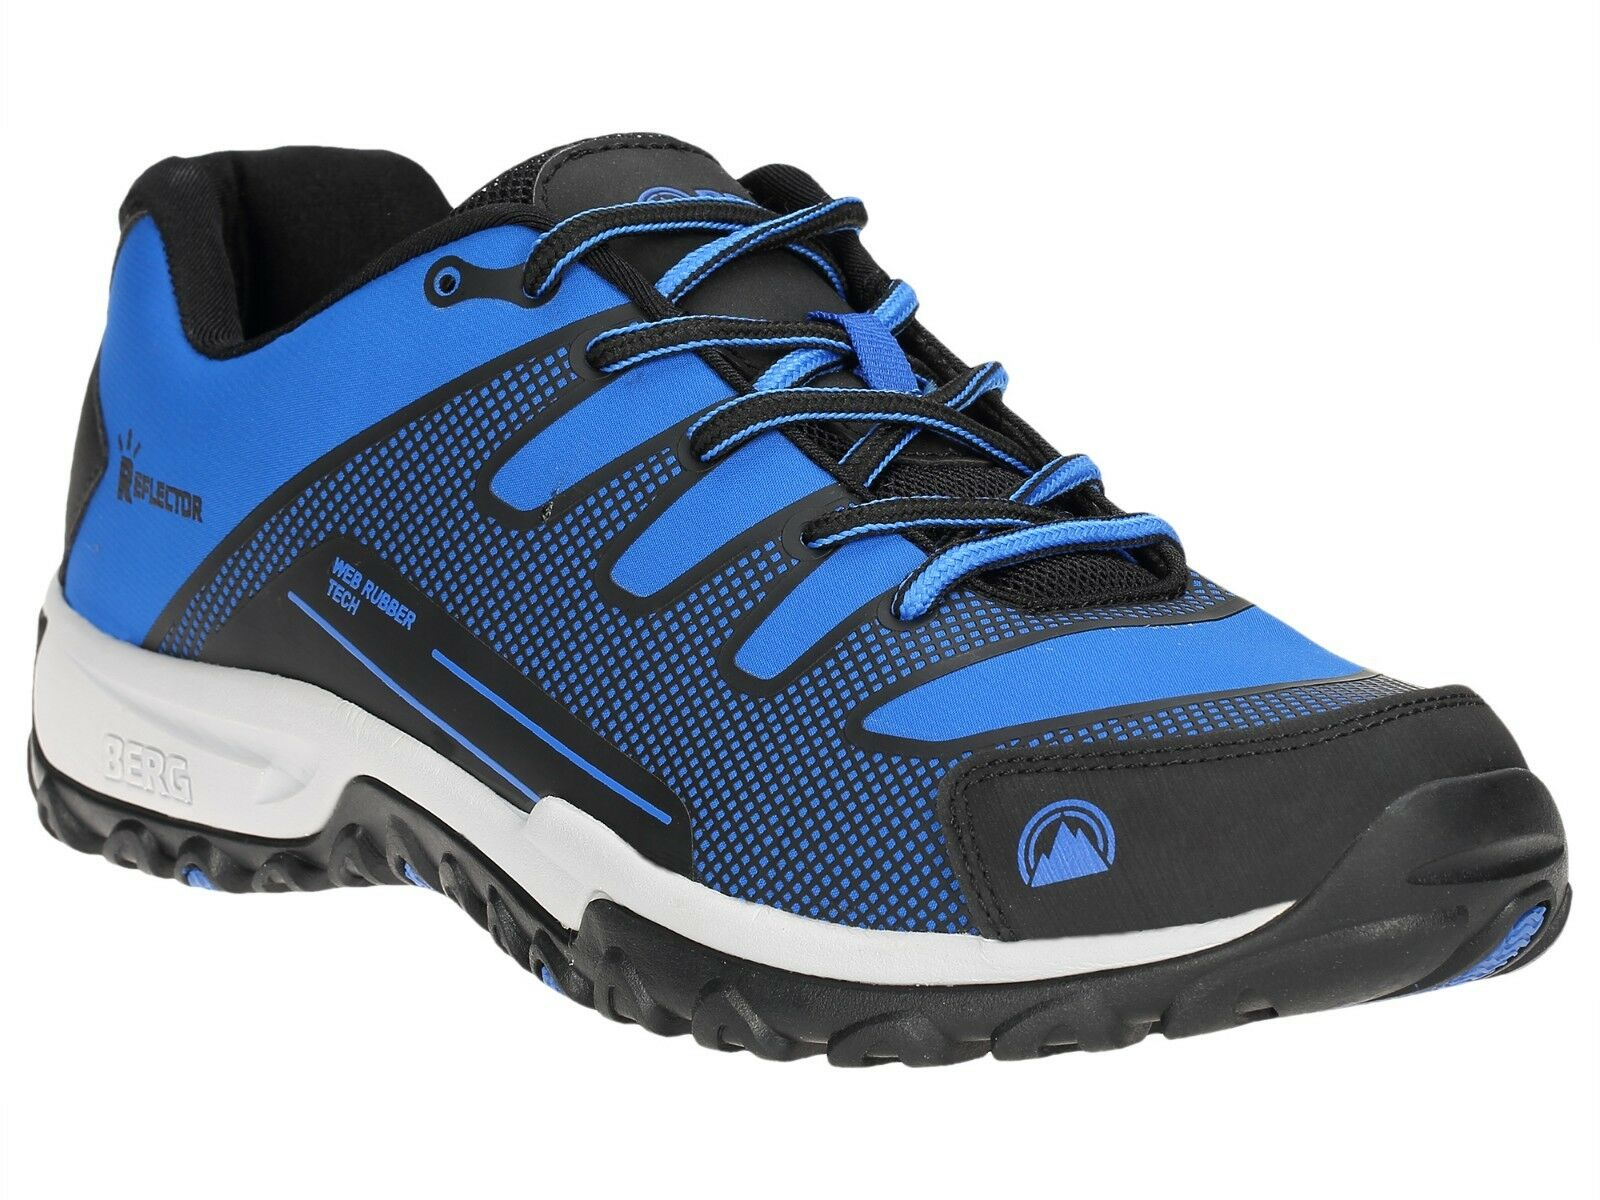 c513b5729c6 MENS OUTDOOR SHOE BERG MENS WAS NOW TRAINERS nxudcl37-Trainers - www ...